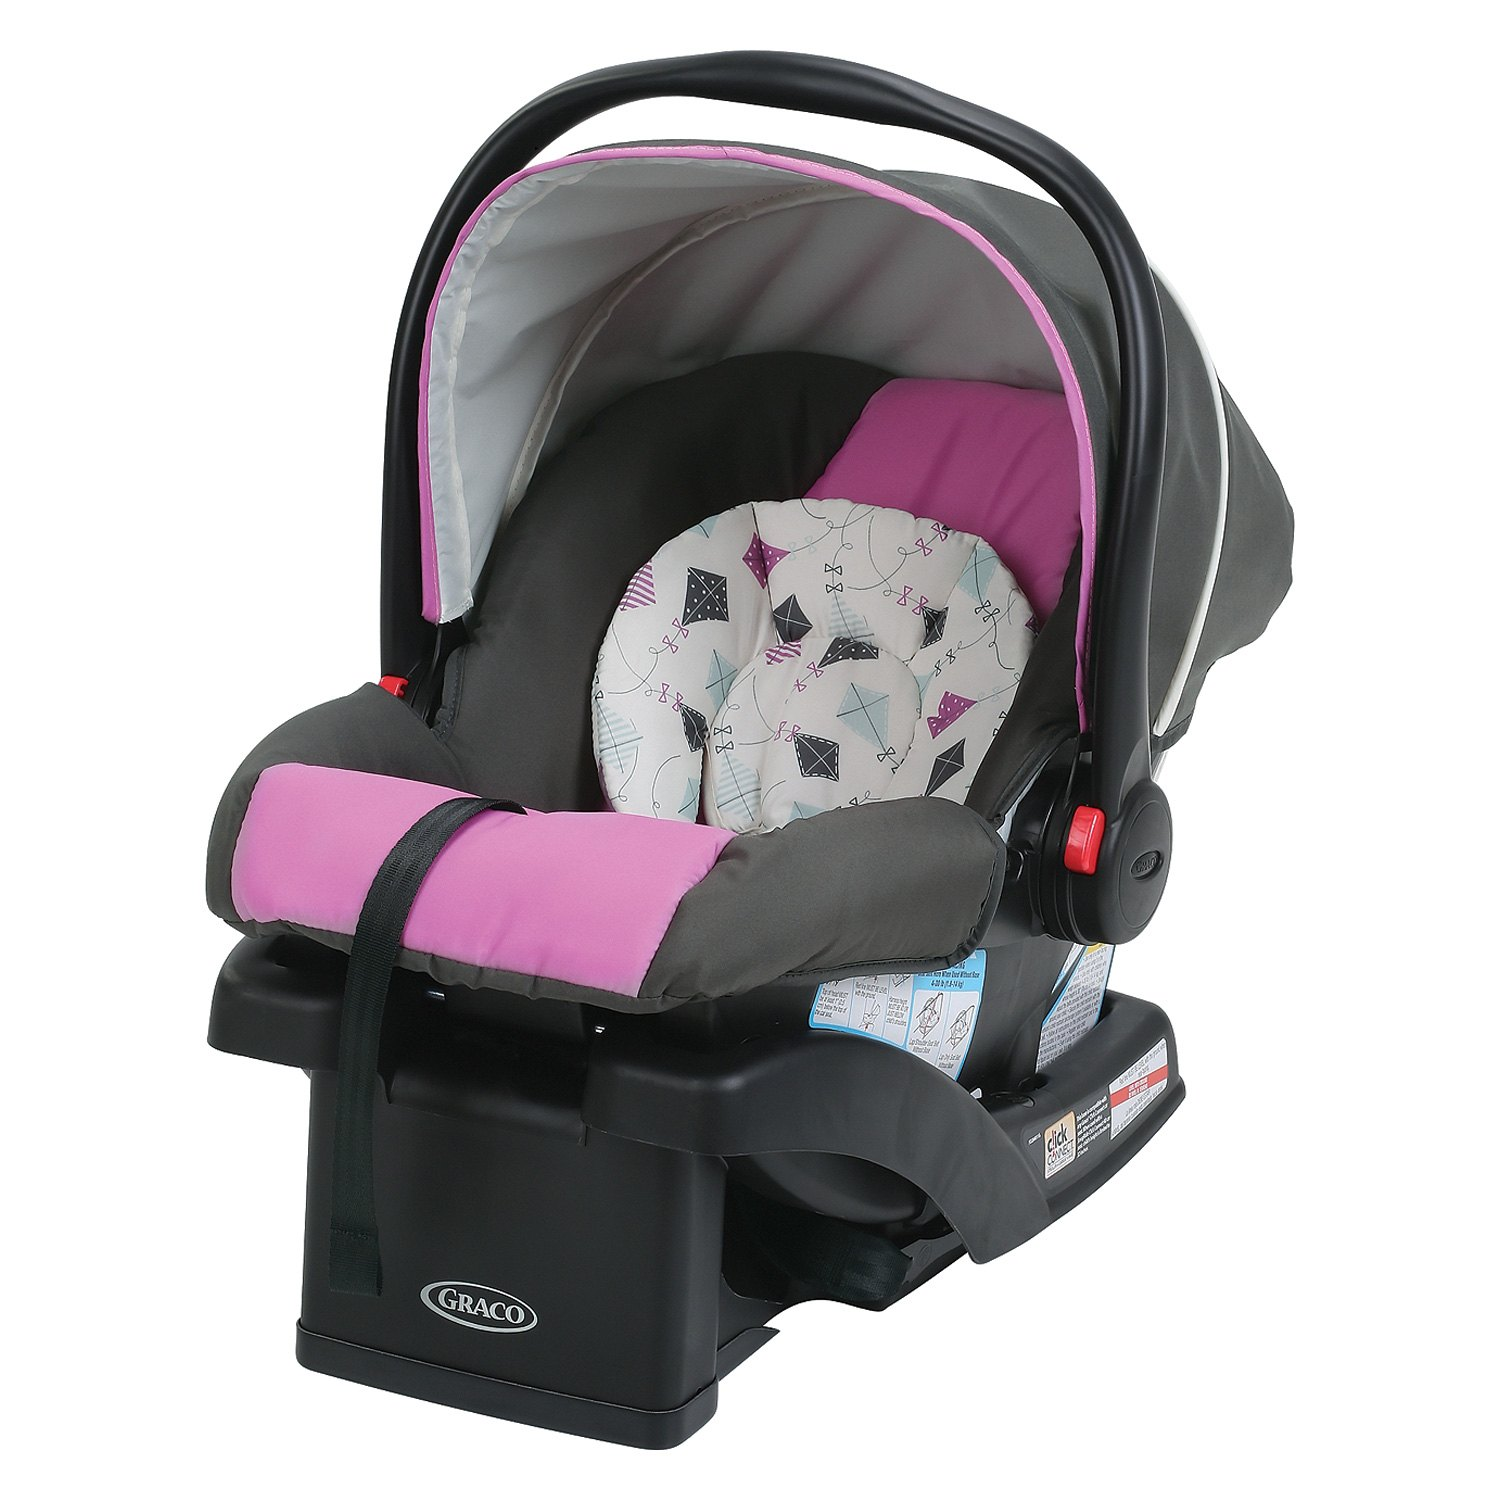 Graco Baby Snugride Connect Infant Car Seat